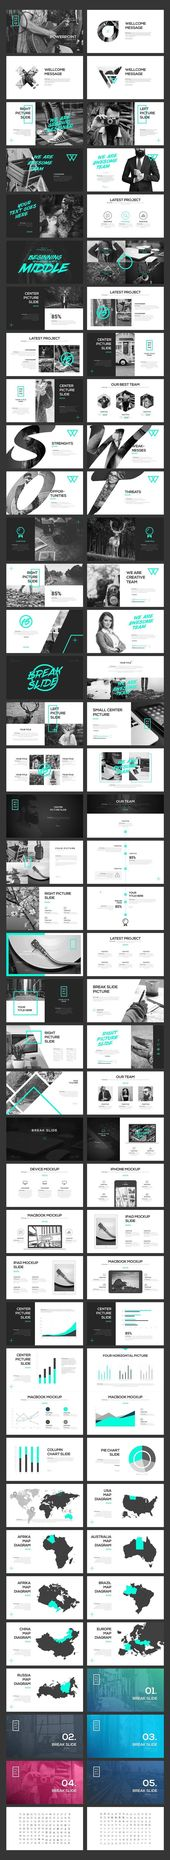 PORTFO PowerPoint Template ~ PowerPoint Templates ~ Creative Market #ppt #powerpoint #powerpoints #presentation #template